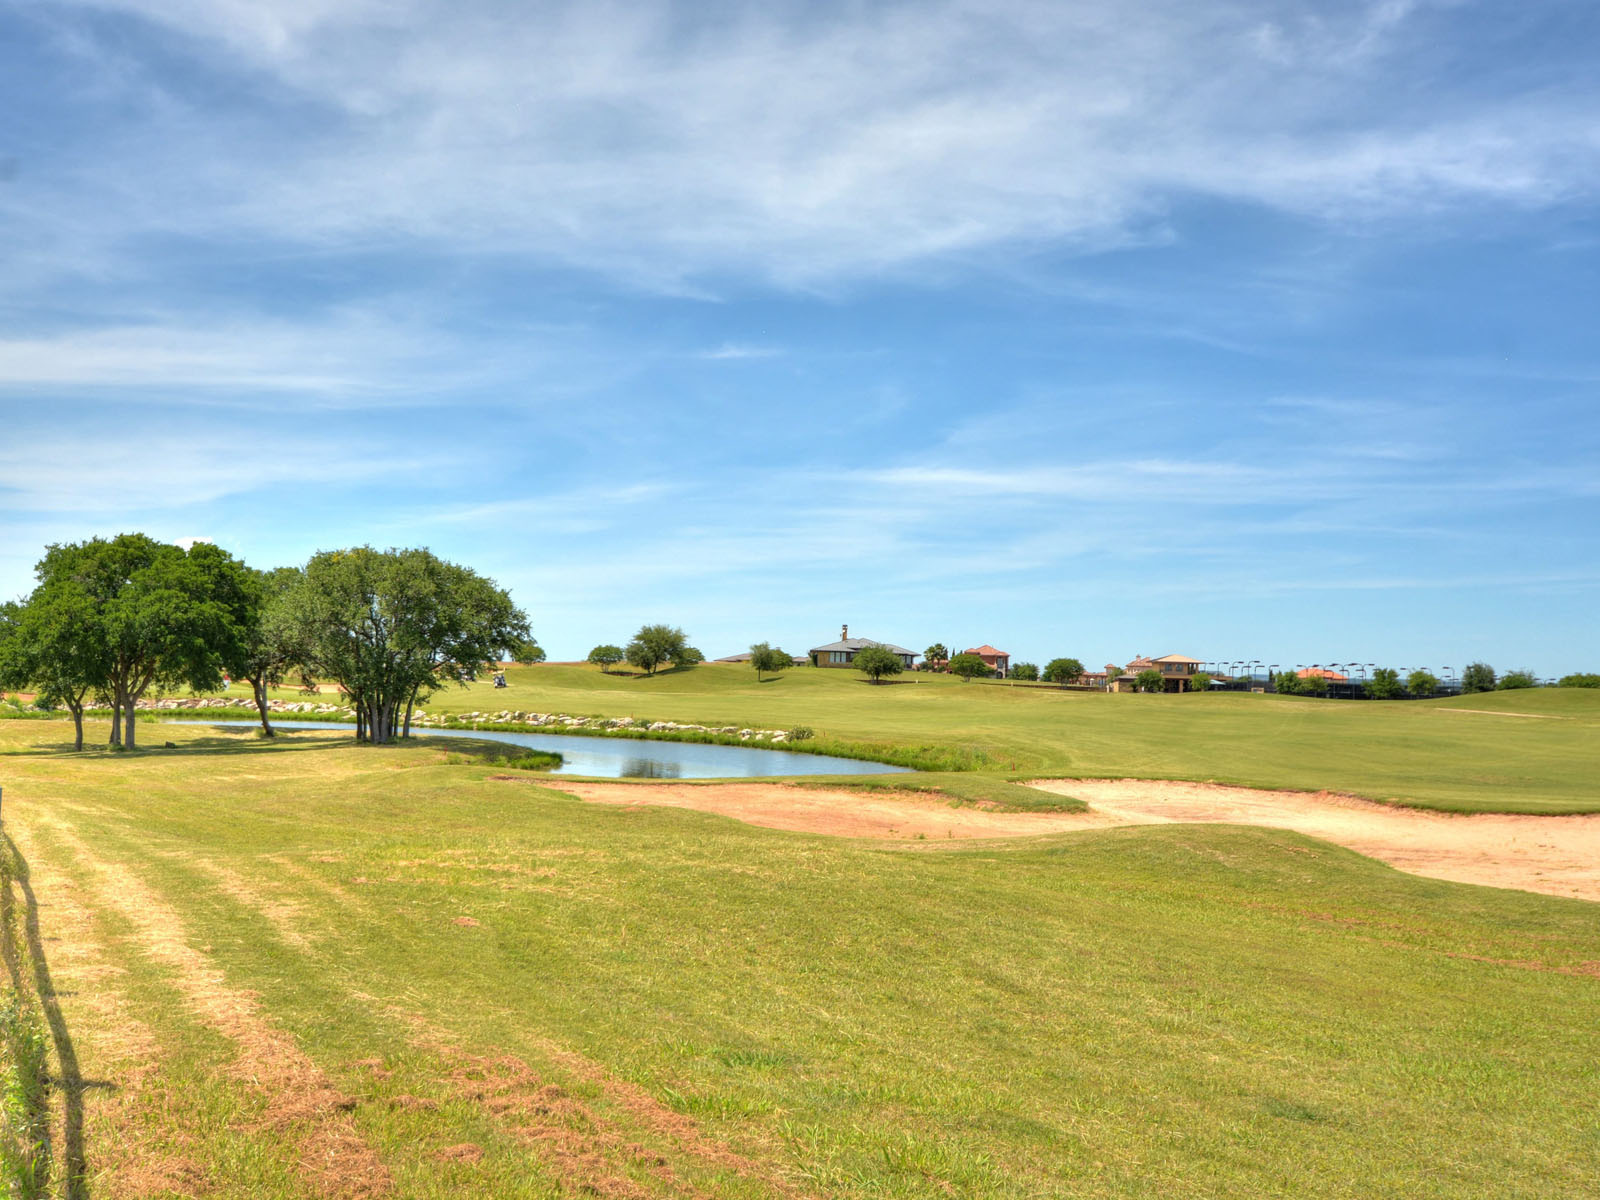 Additional photo for property listing at Own A Piece of the Spicewood Lifestyle 1701 Moonlight Trce Spicewood, Texas 78669 Estados Unidos